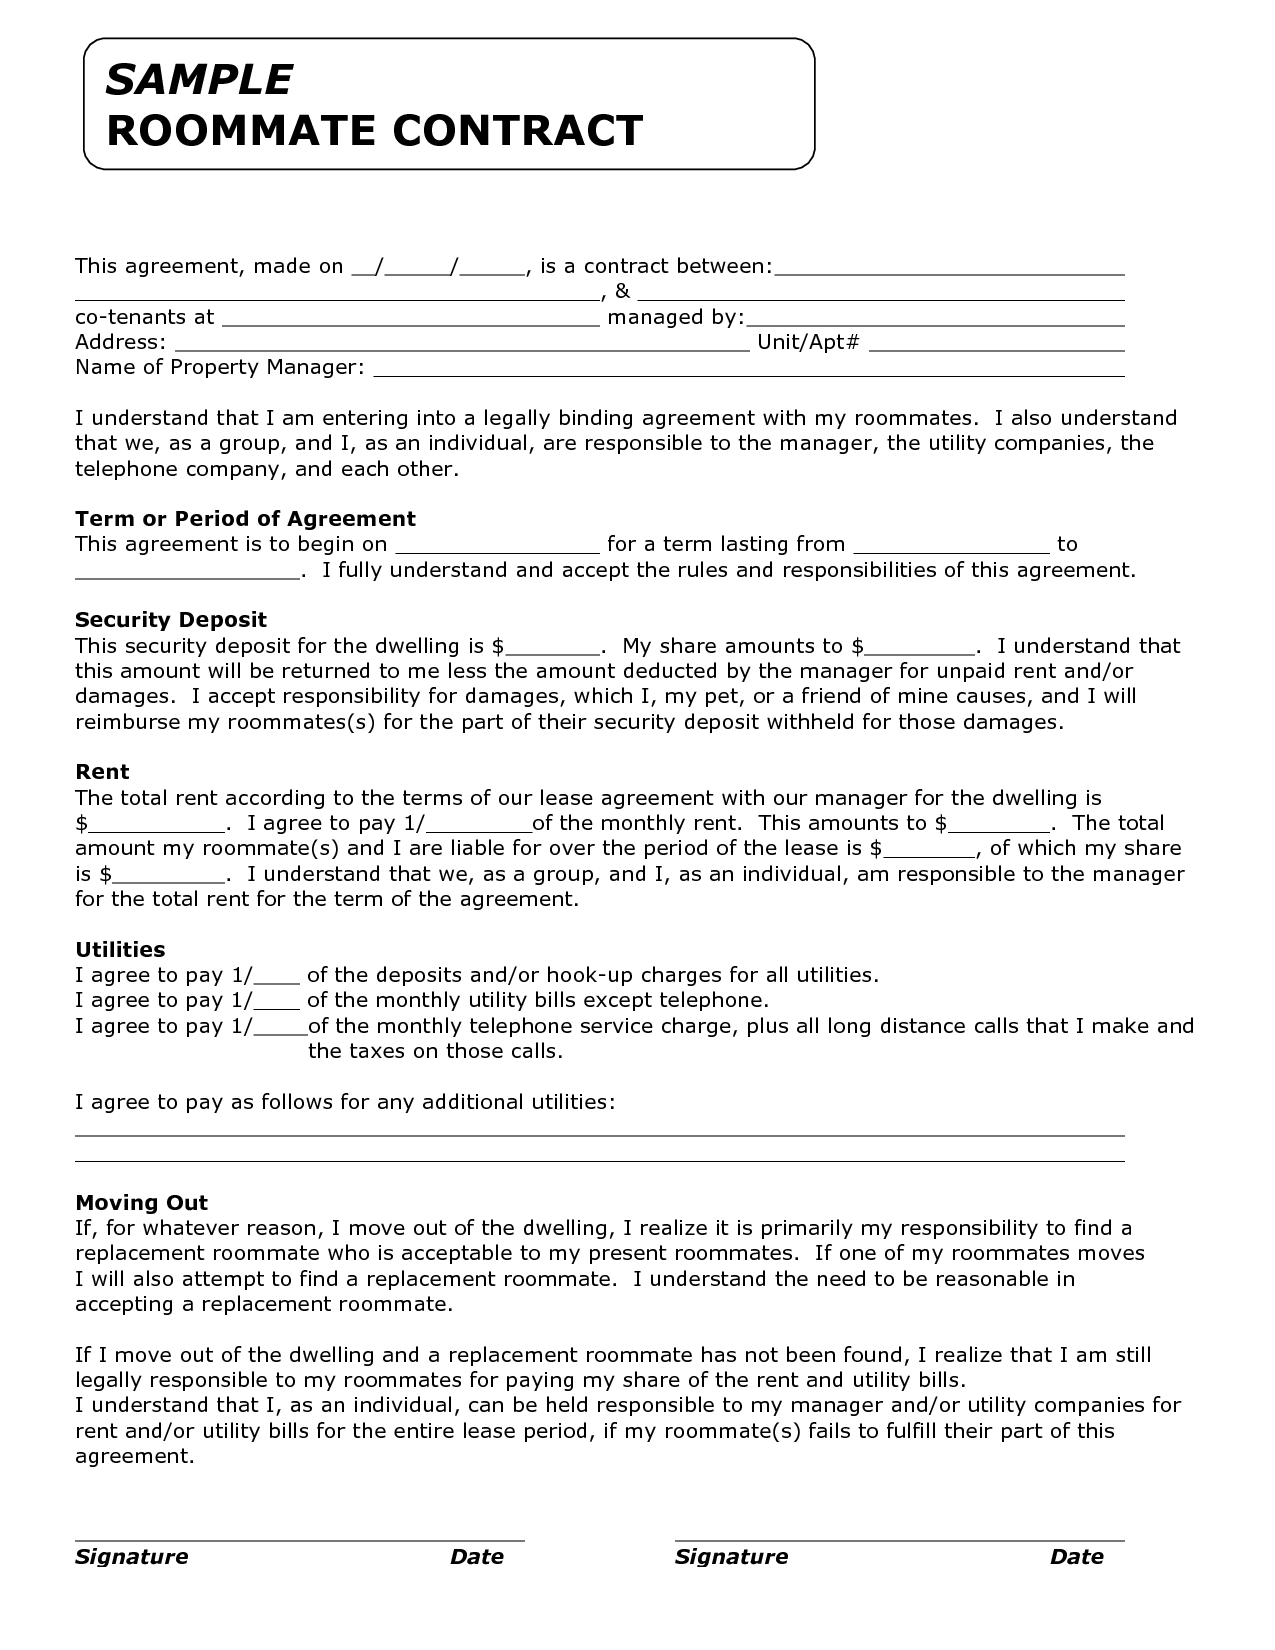 roommate contract agreement form